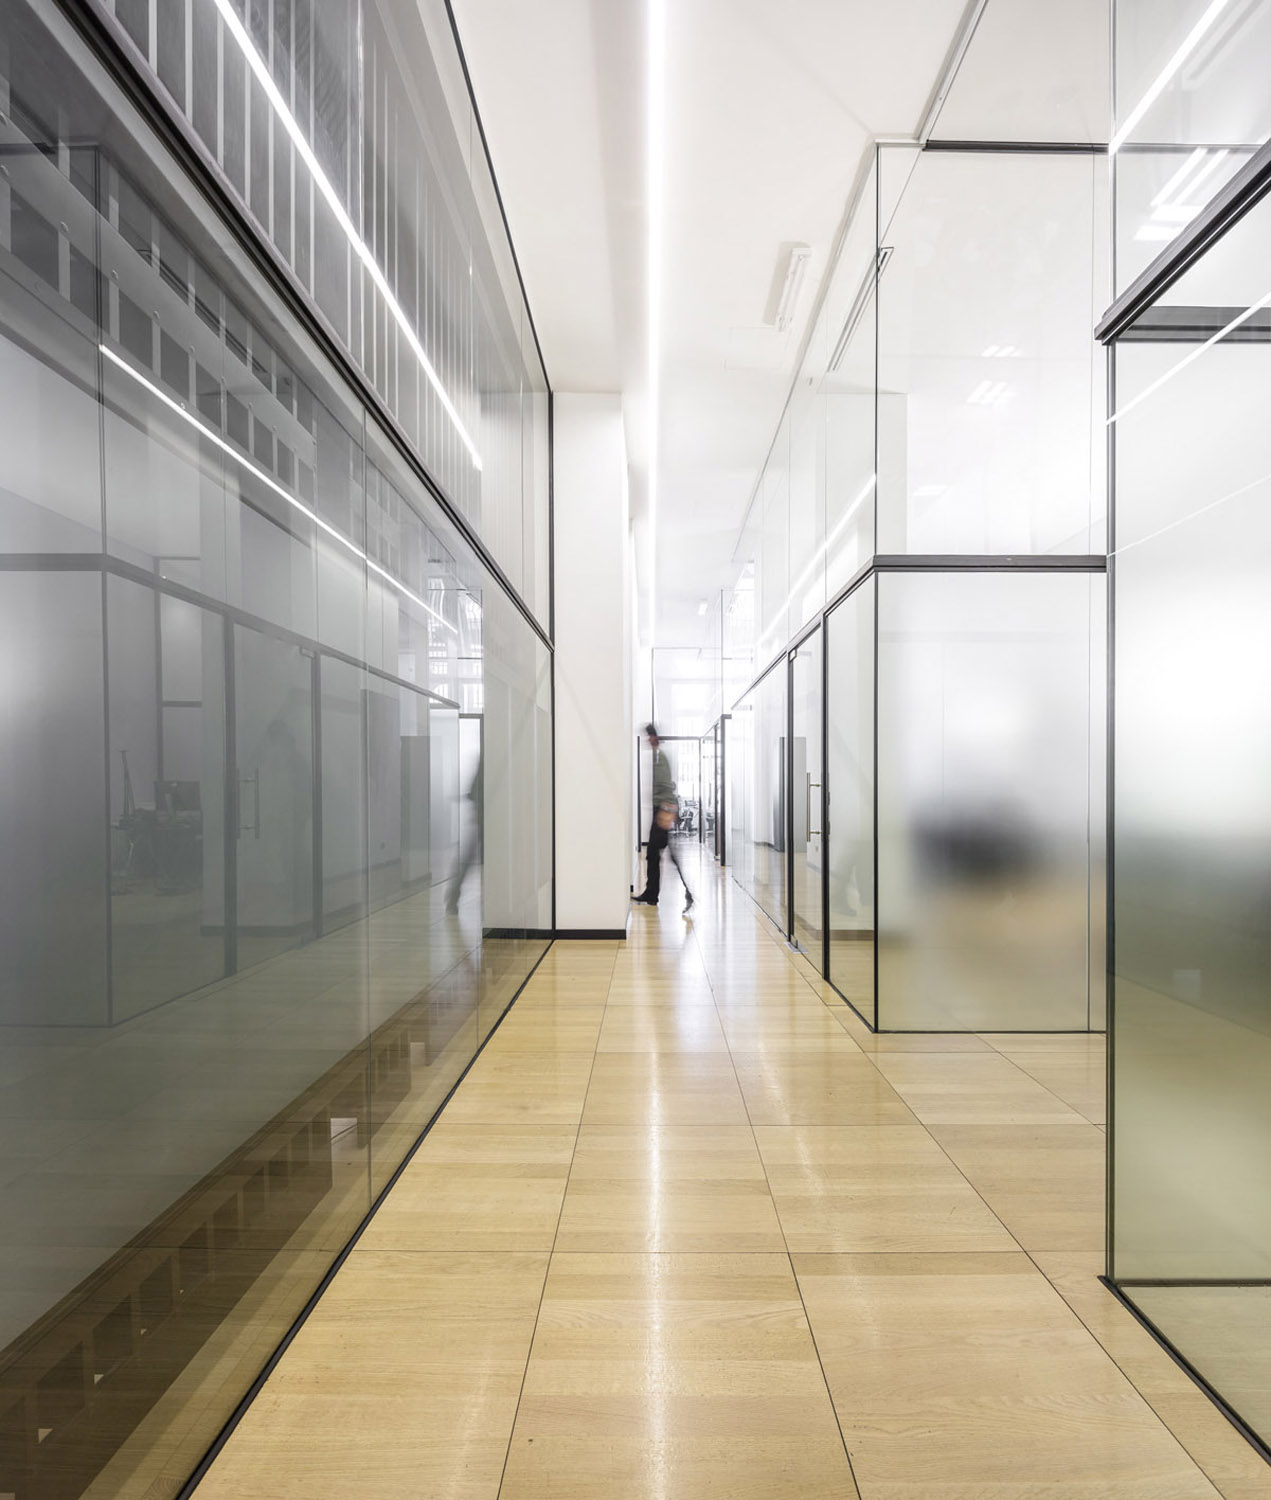 Only glass partions divides the office spaces from each other Fernando Guerra